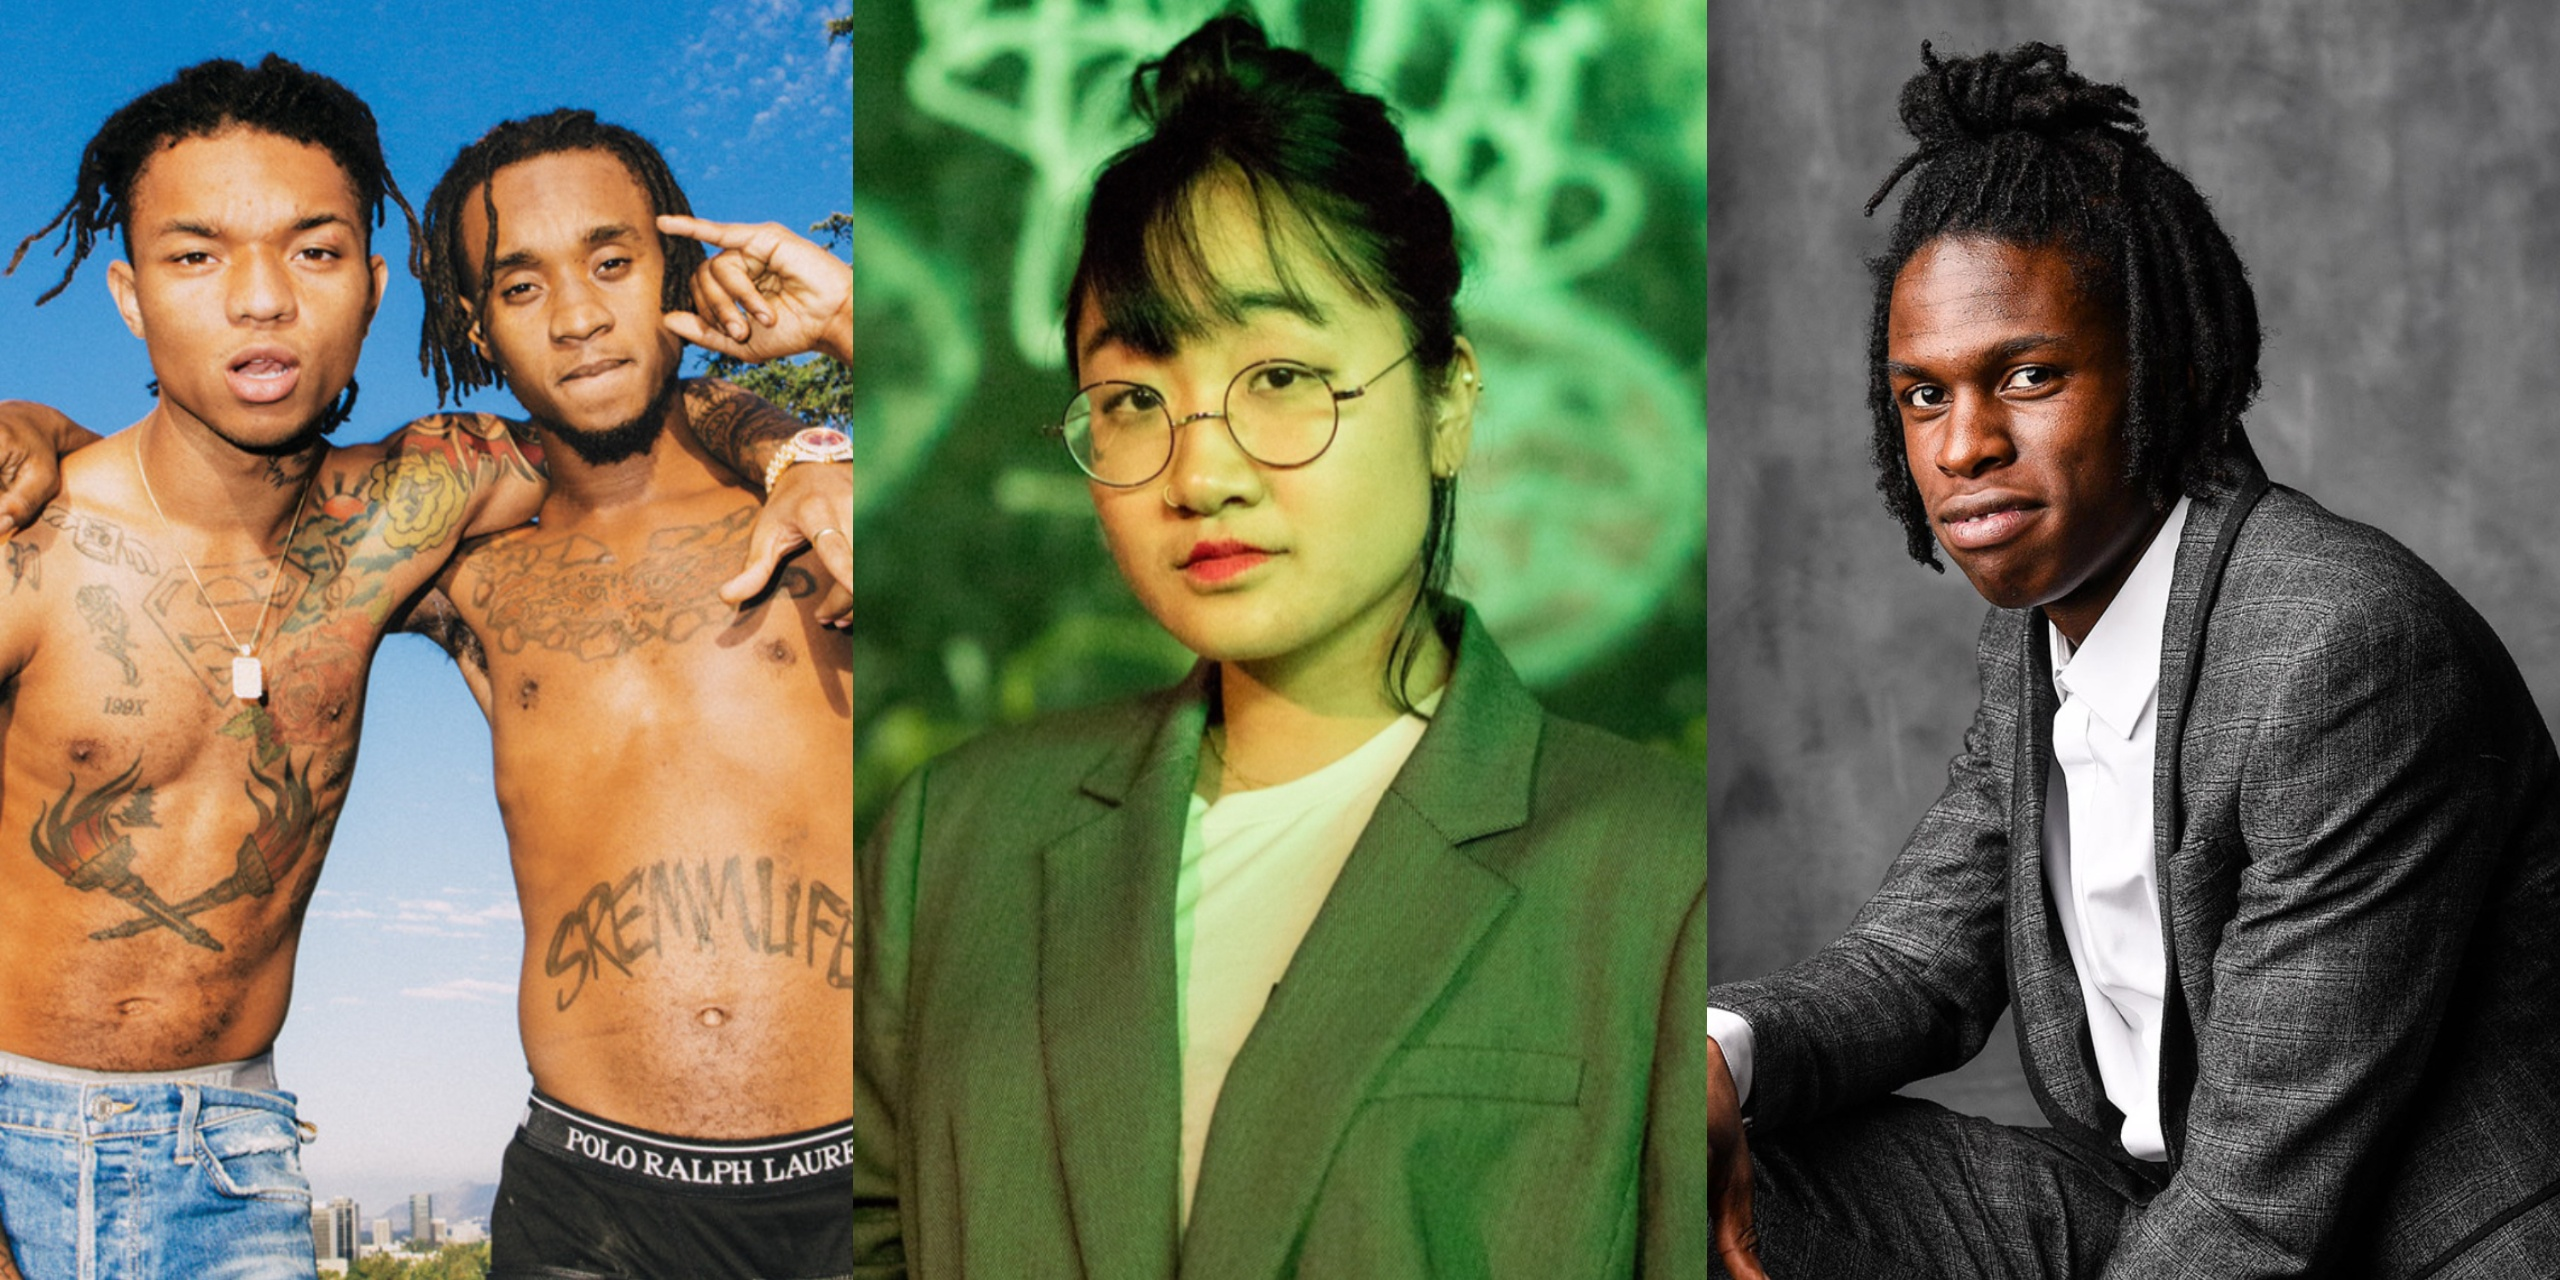 BREAKING: Good Vibes Festival 2019 releases Phase 1 line-up – Rae Sremmurd, Daniel Caesar, Yaeji and more